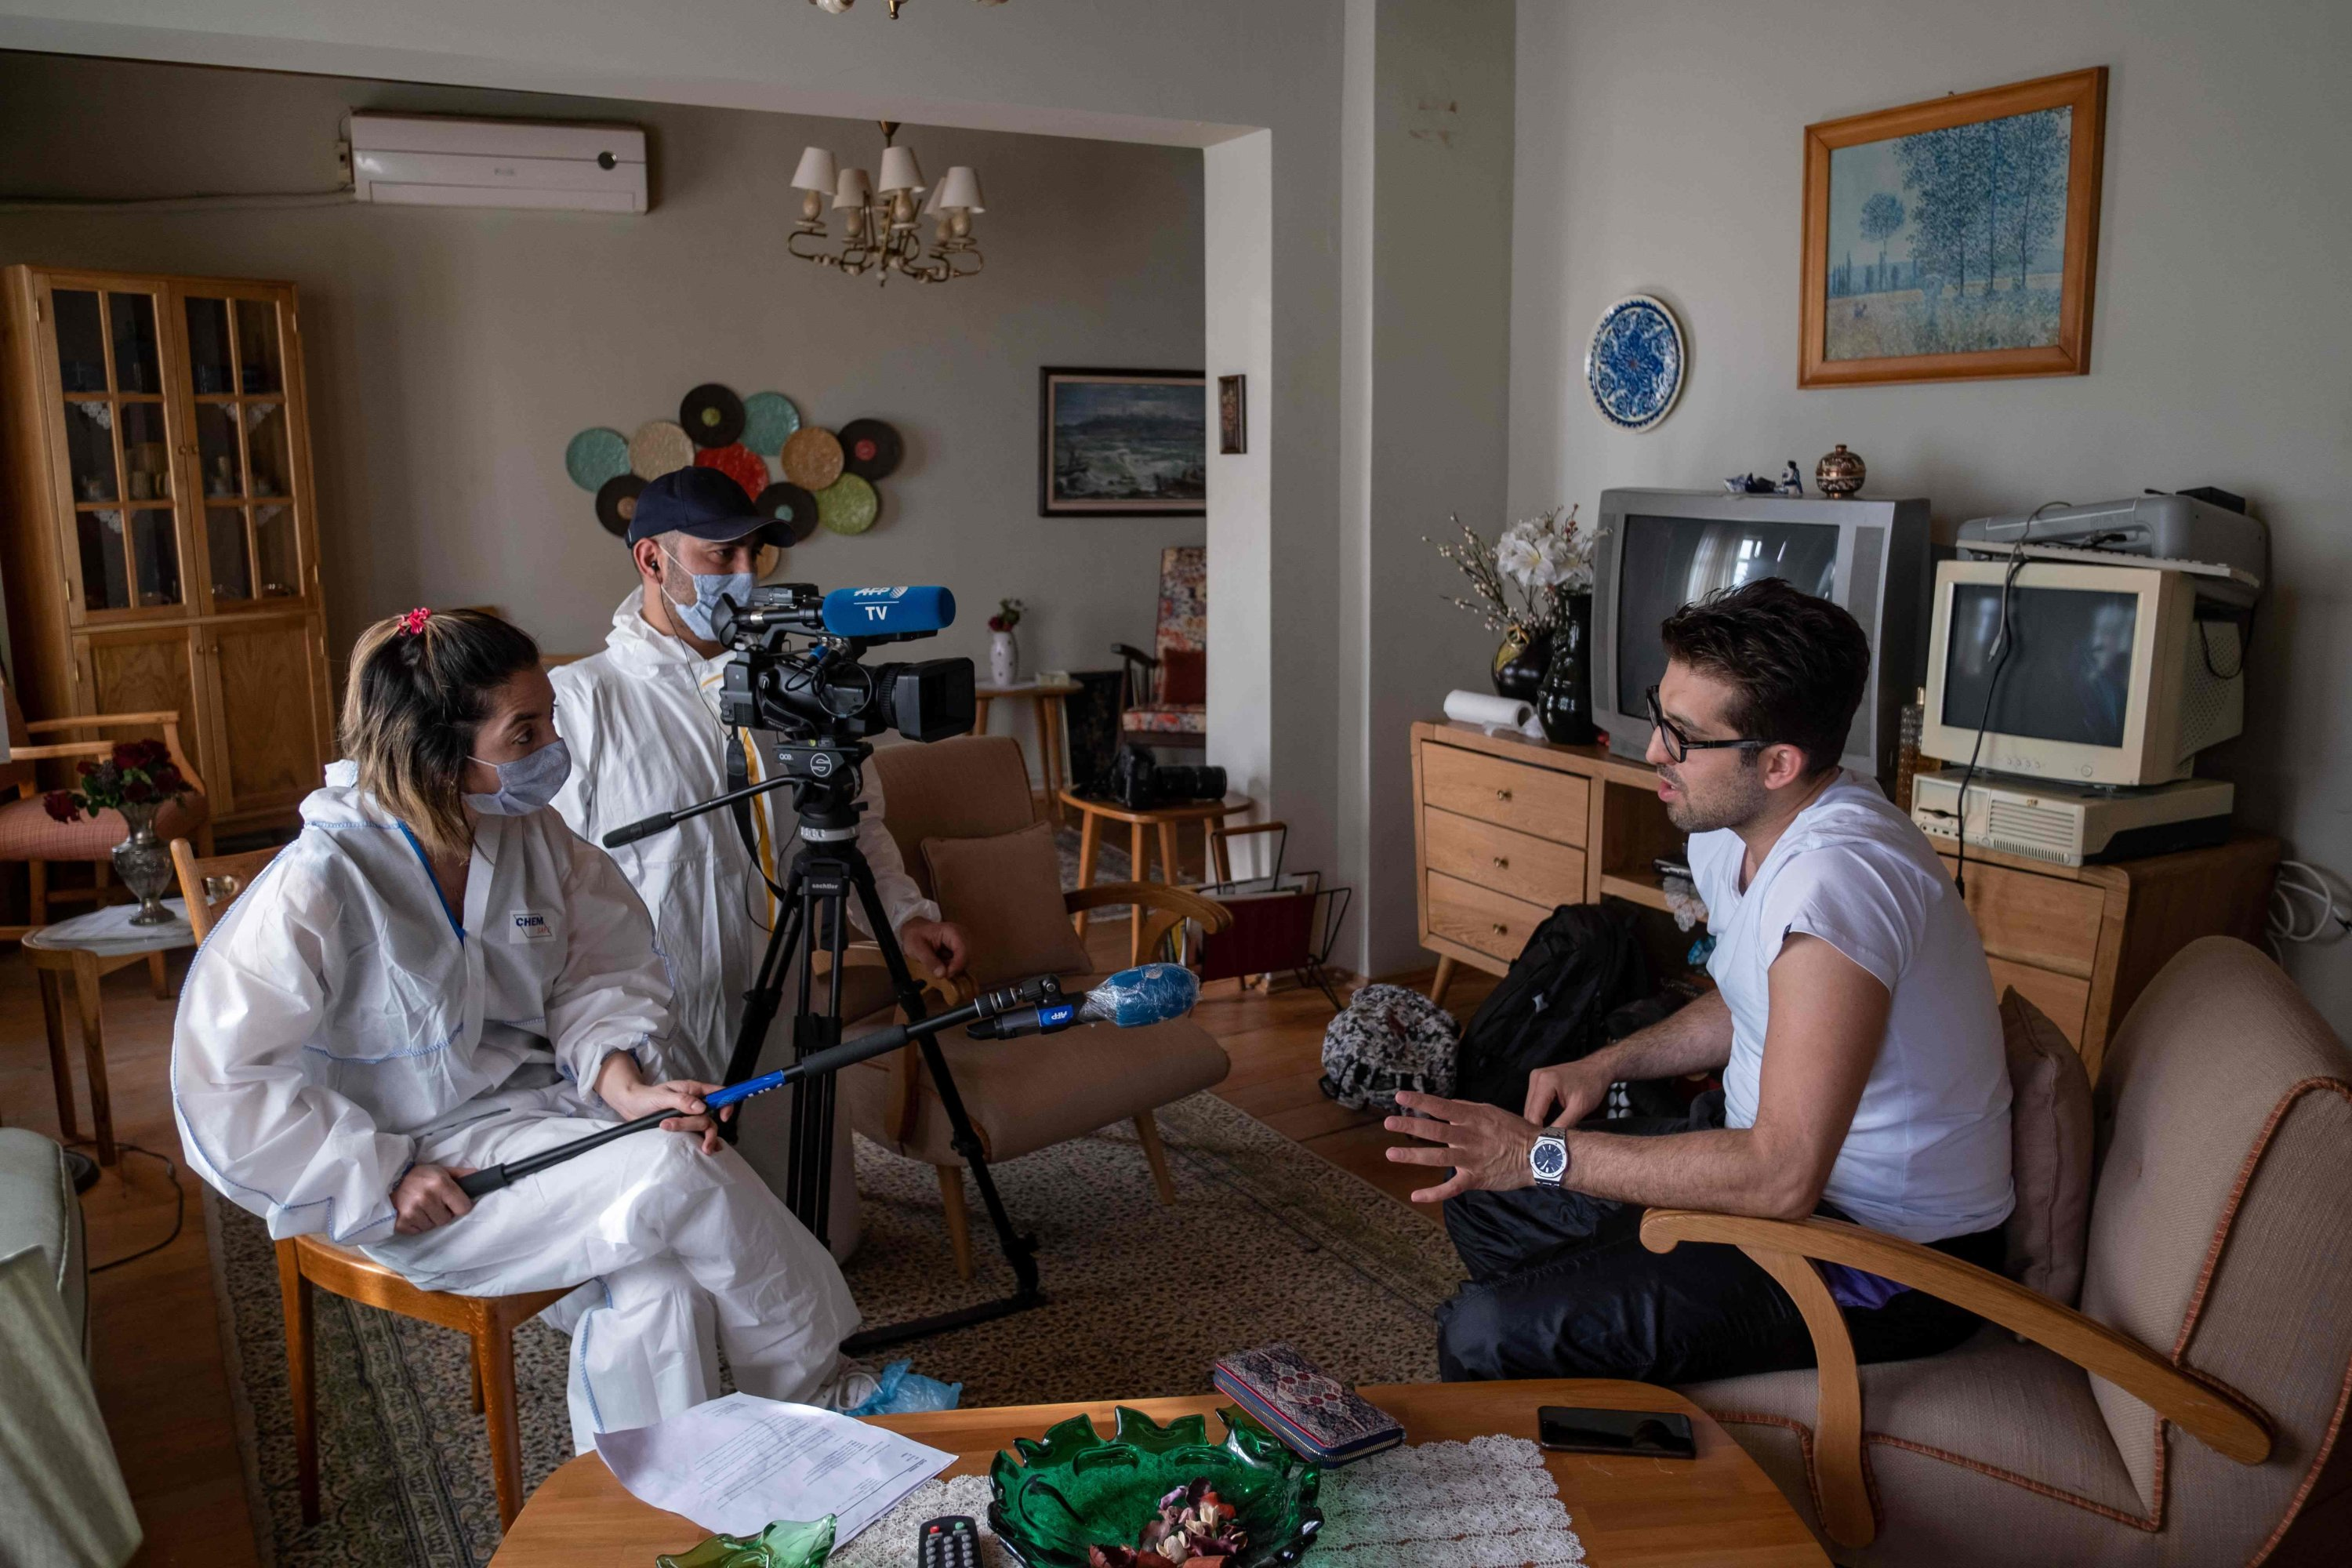 Turkish actor Doğu Demirkol explains how TV sets work during an interview with Agence France-Presse (AFP), in Beykoz, on the outskirts of Istanbul, Turkey, May 20, 2020. (AFP Photo)